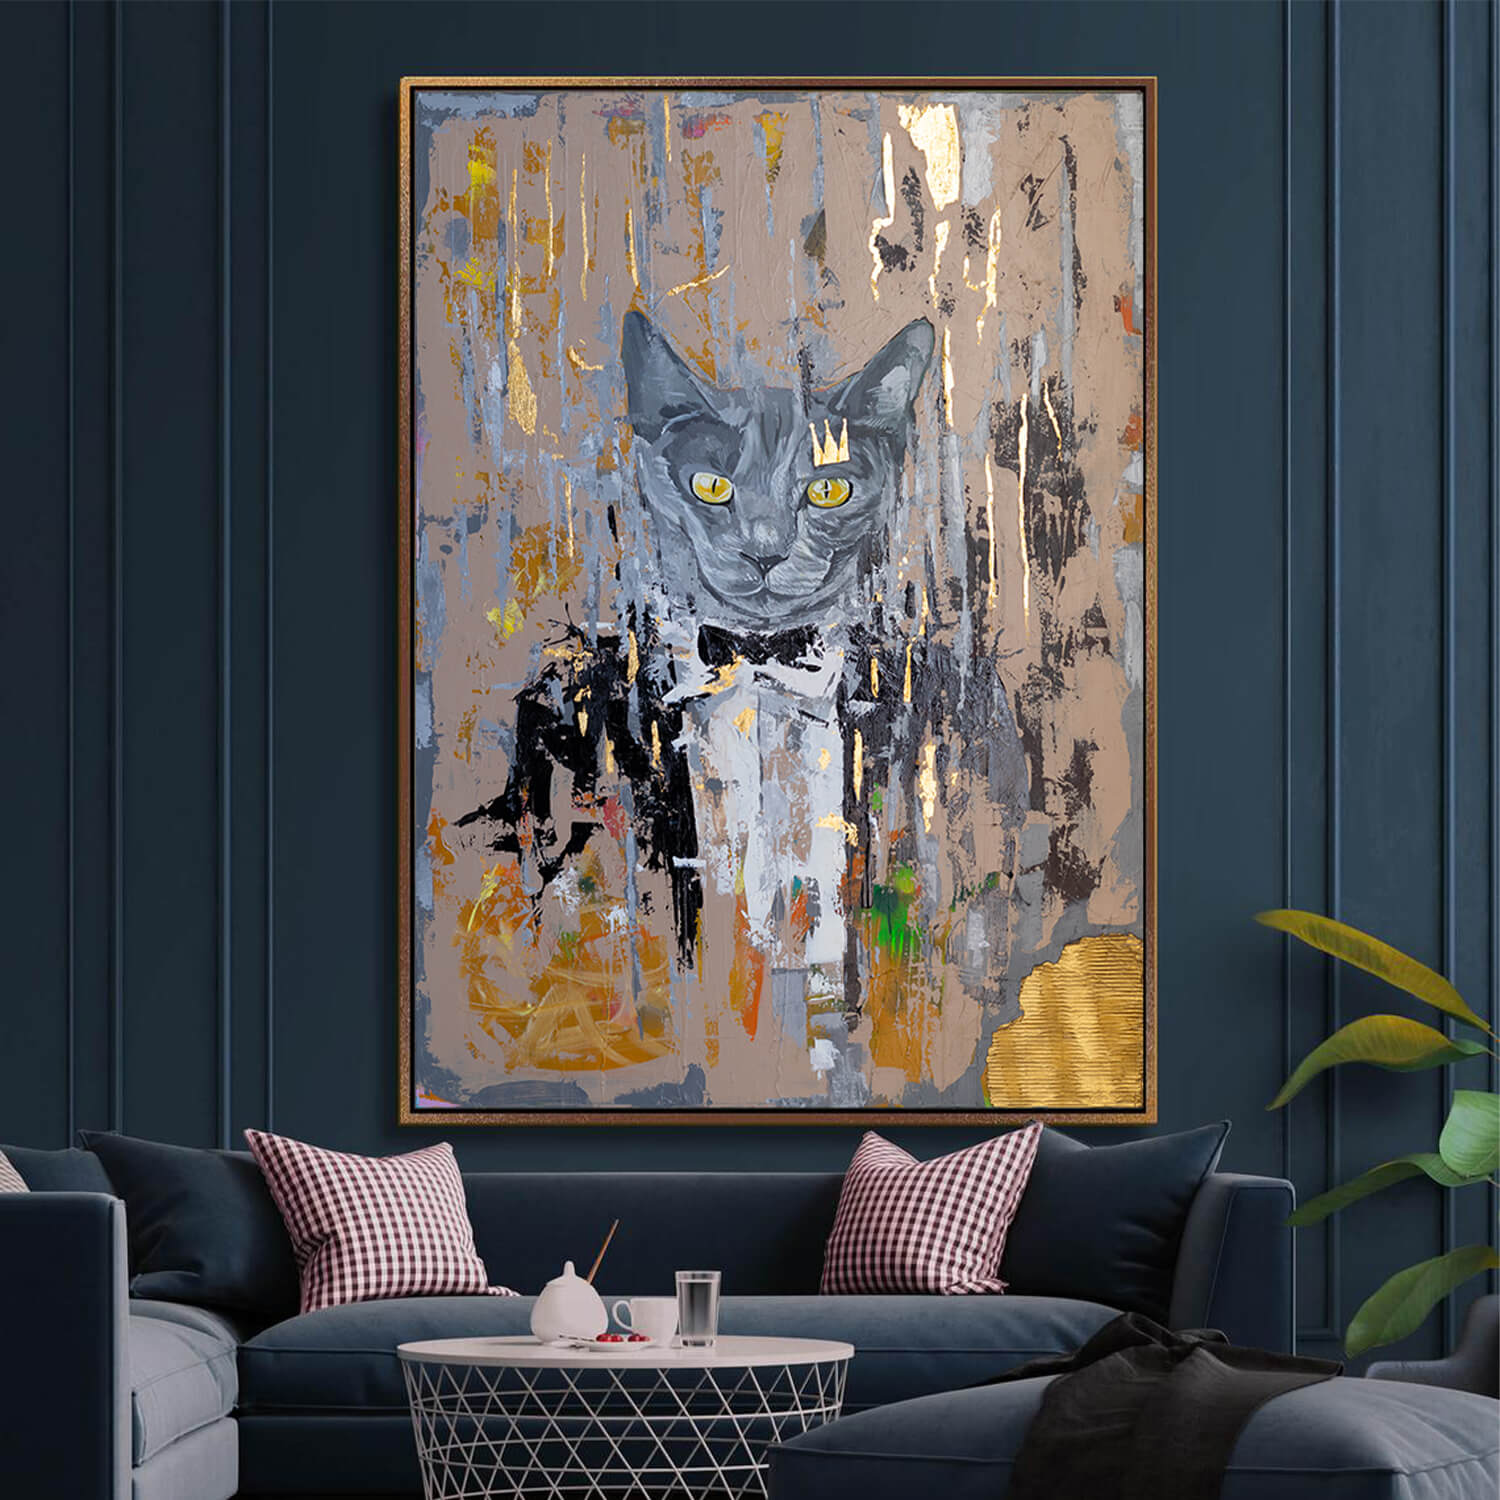 abstract_art_painting_on_canvas_large_wall_art_ron_deri_22